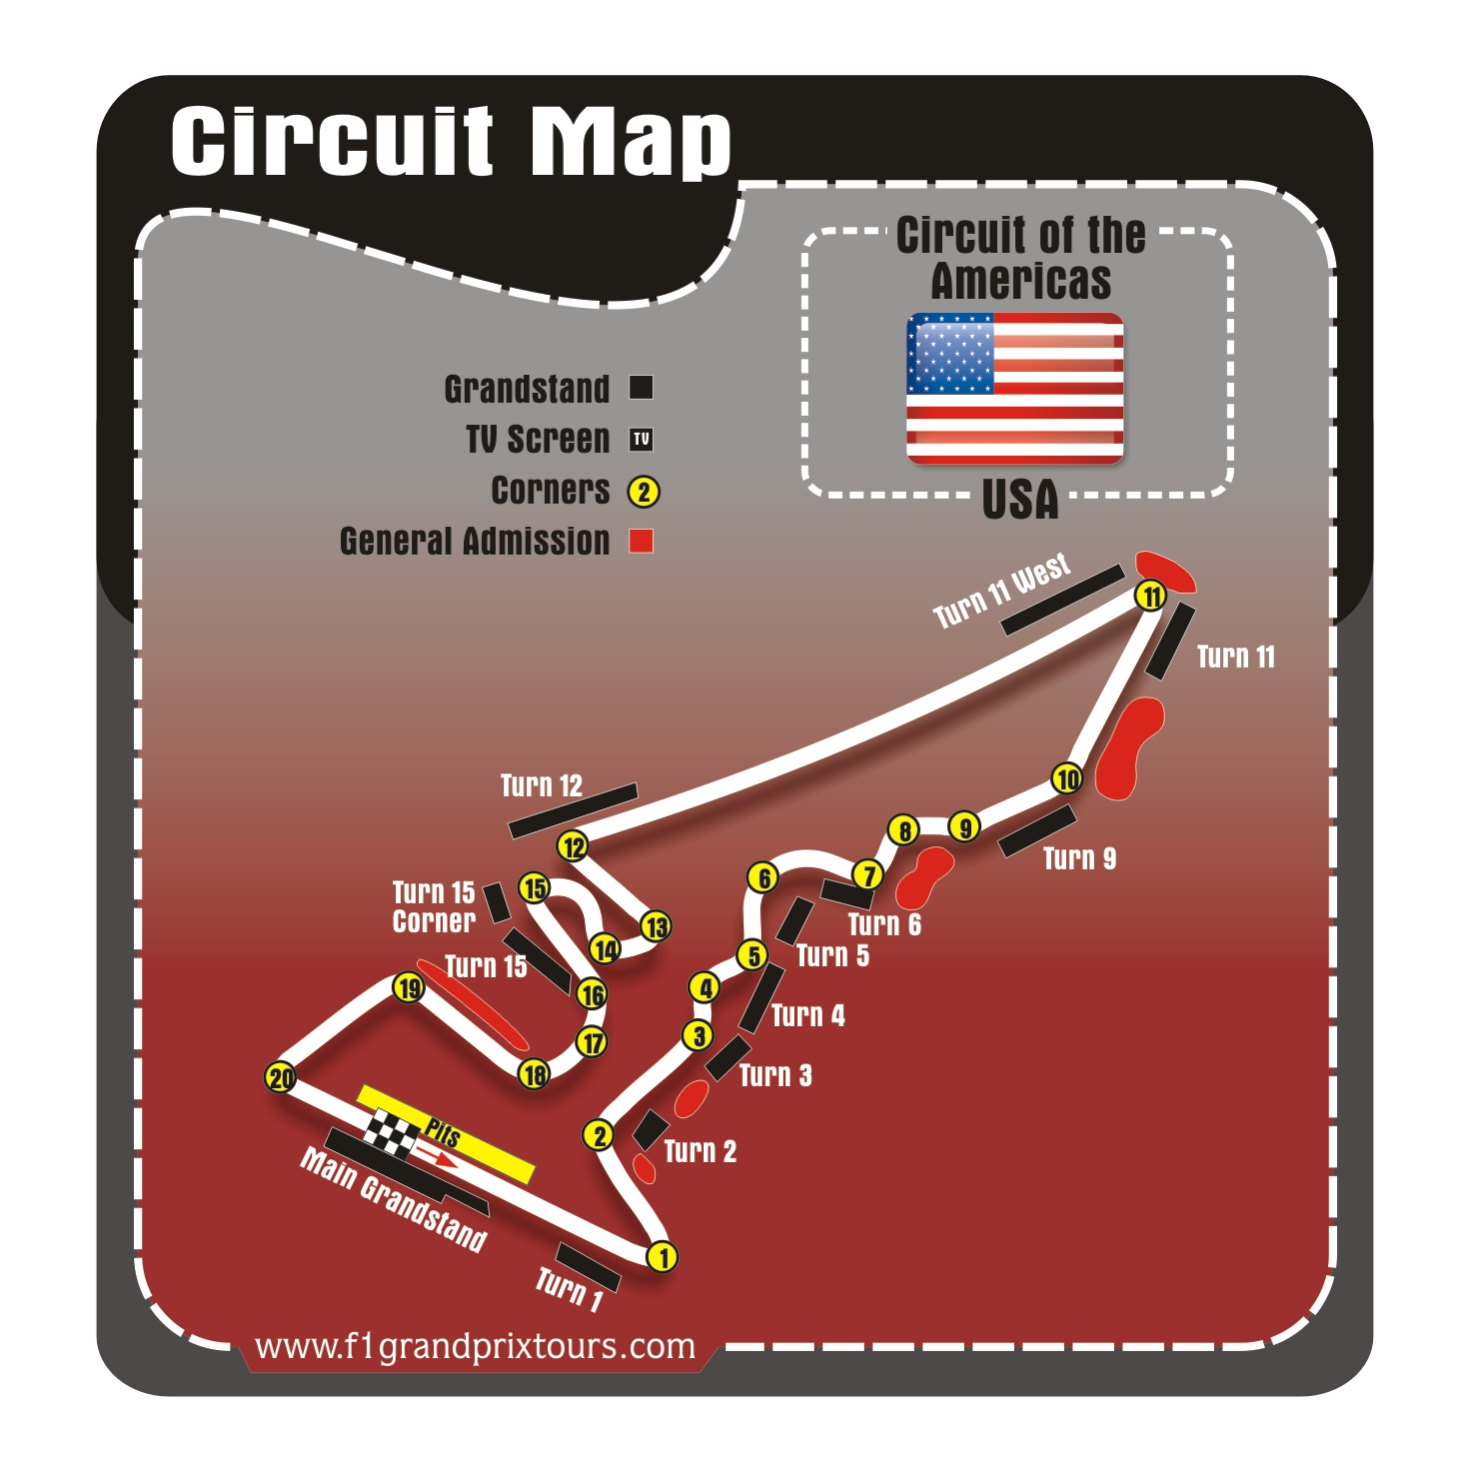 United States F1 Grand Prix – 2016 | F1 Grand Prix ToursF1 Grand Prix Tours